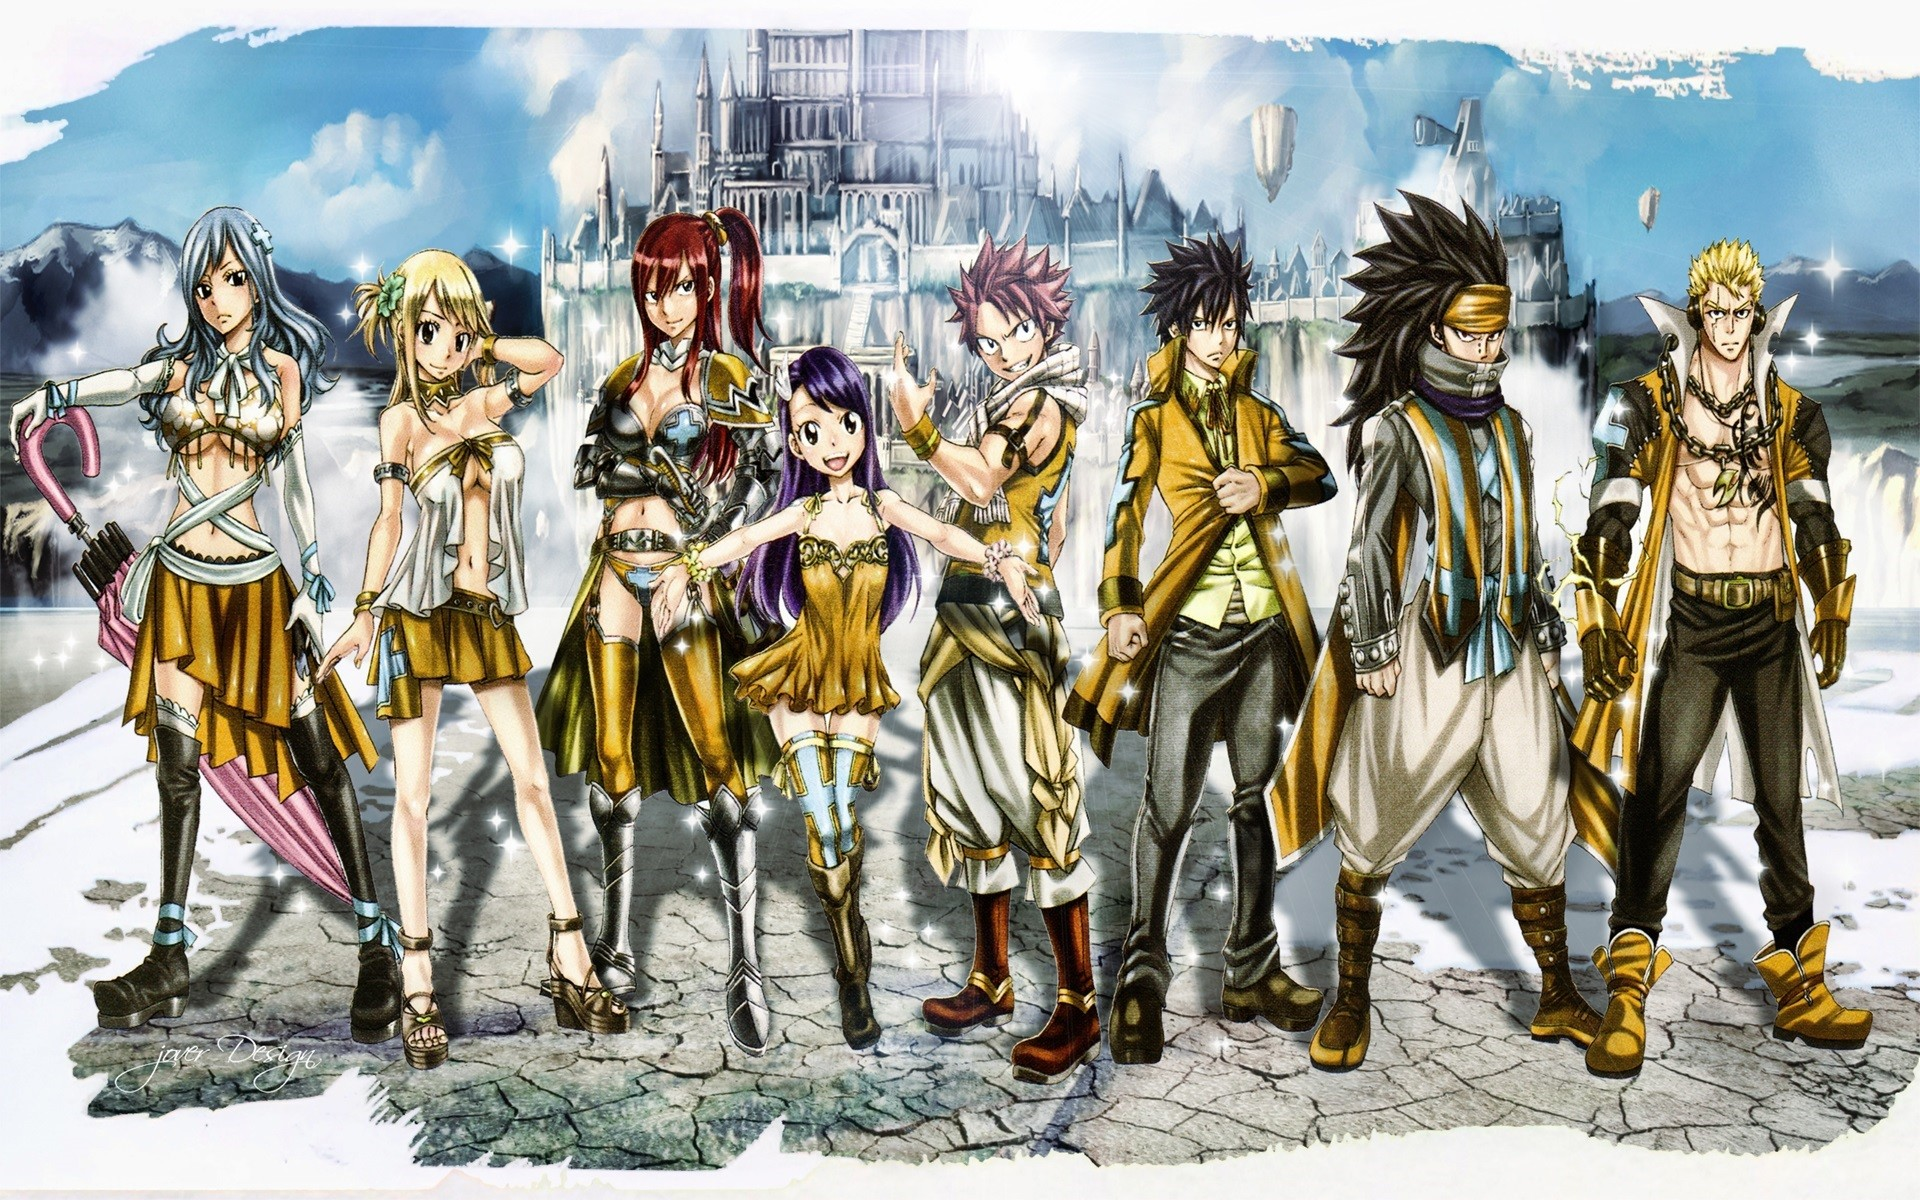 Fairy Tail Wallpaper Hd Phone Top Anime Wallpaper